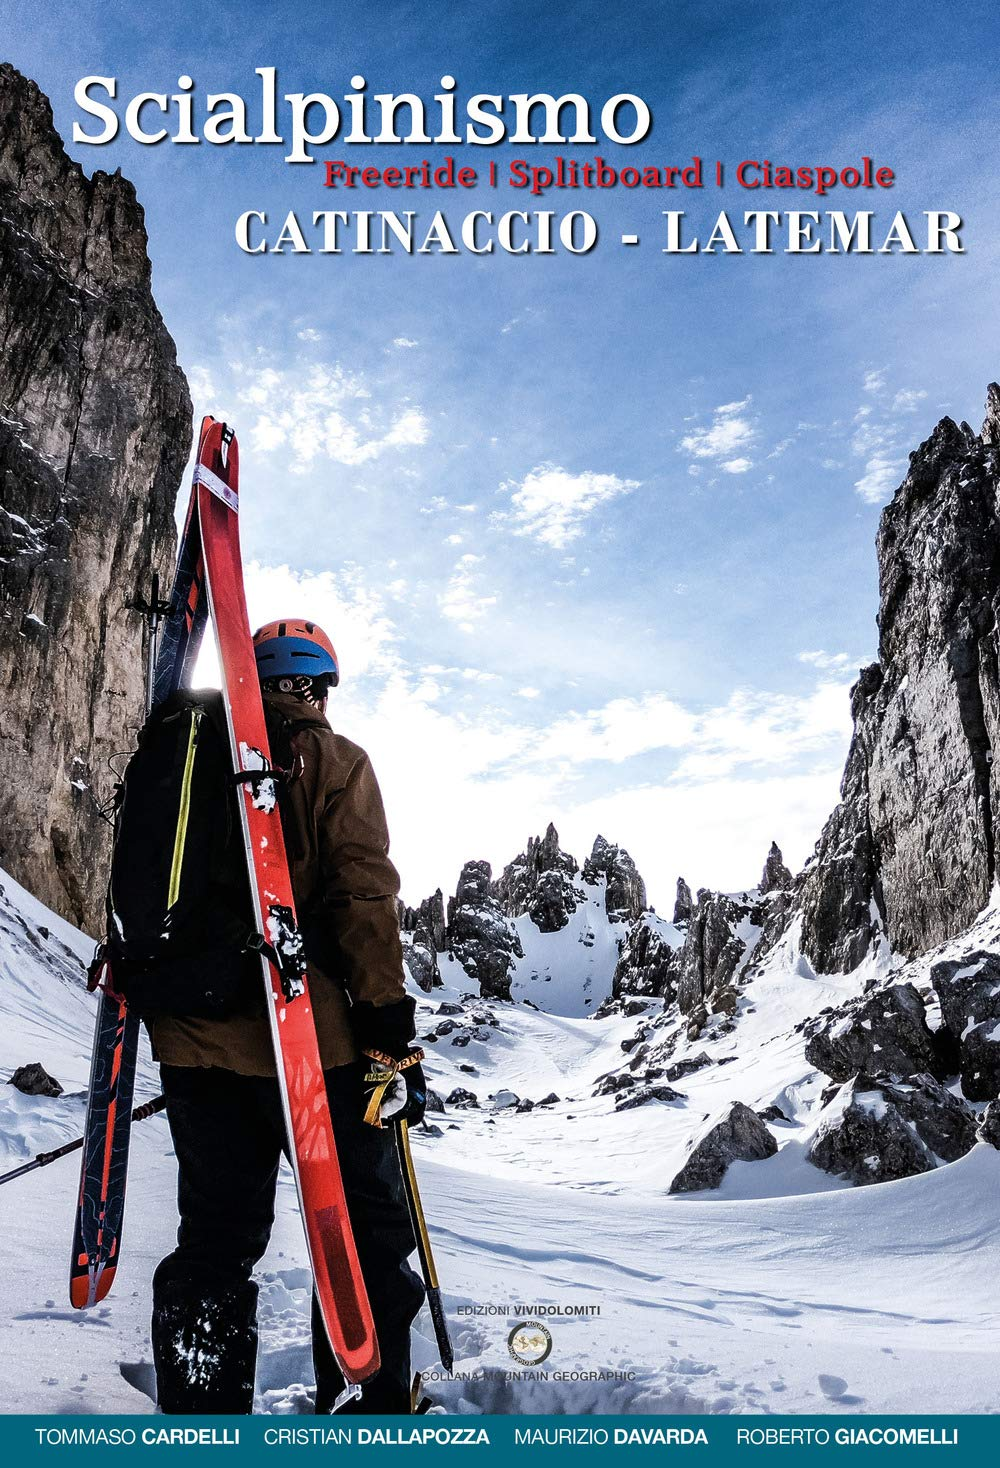 Download Scialpinismo Catinaccio Latemar. Freeride, splitboard, ciaspole (Mountain geographic)